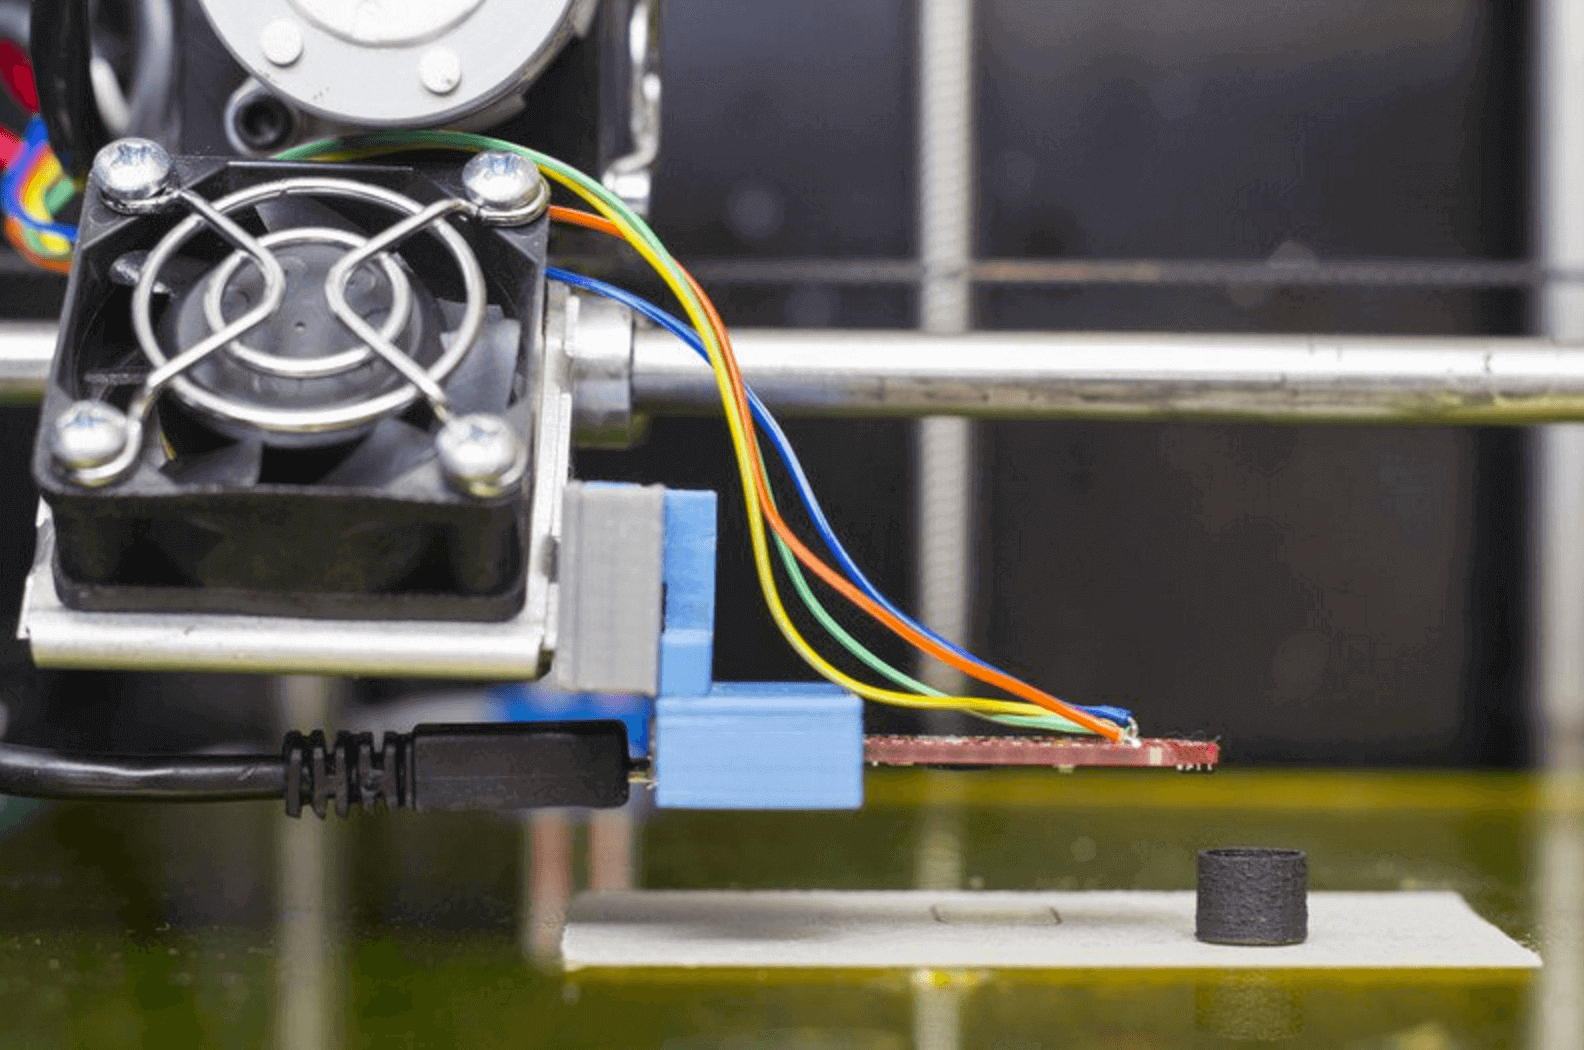 Researchers in Vienna Create First 3D Printed Magnet | All3DP